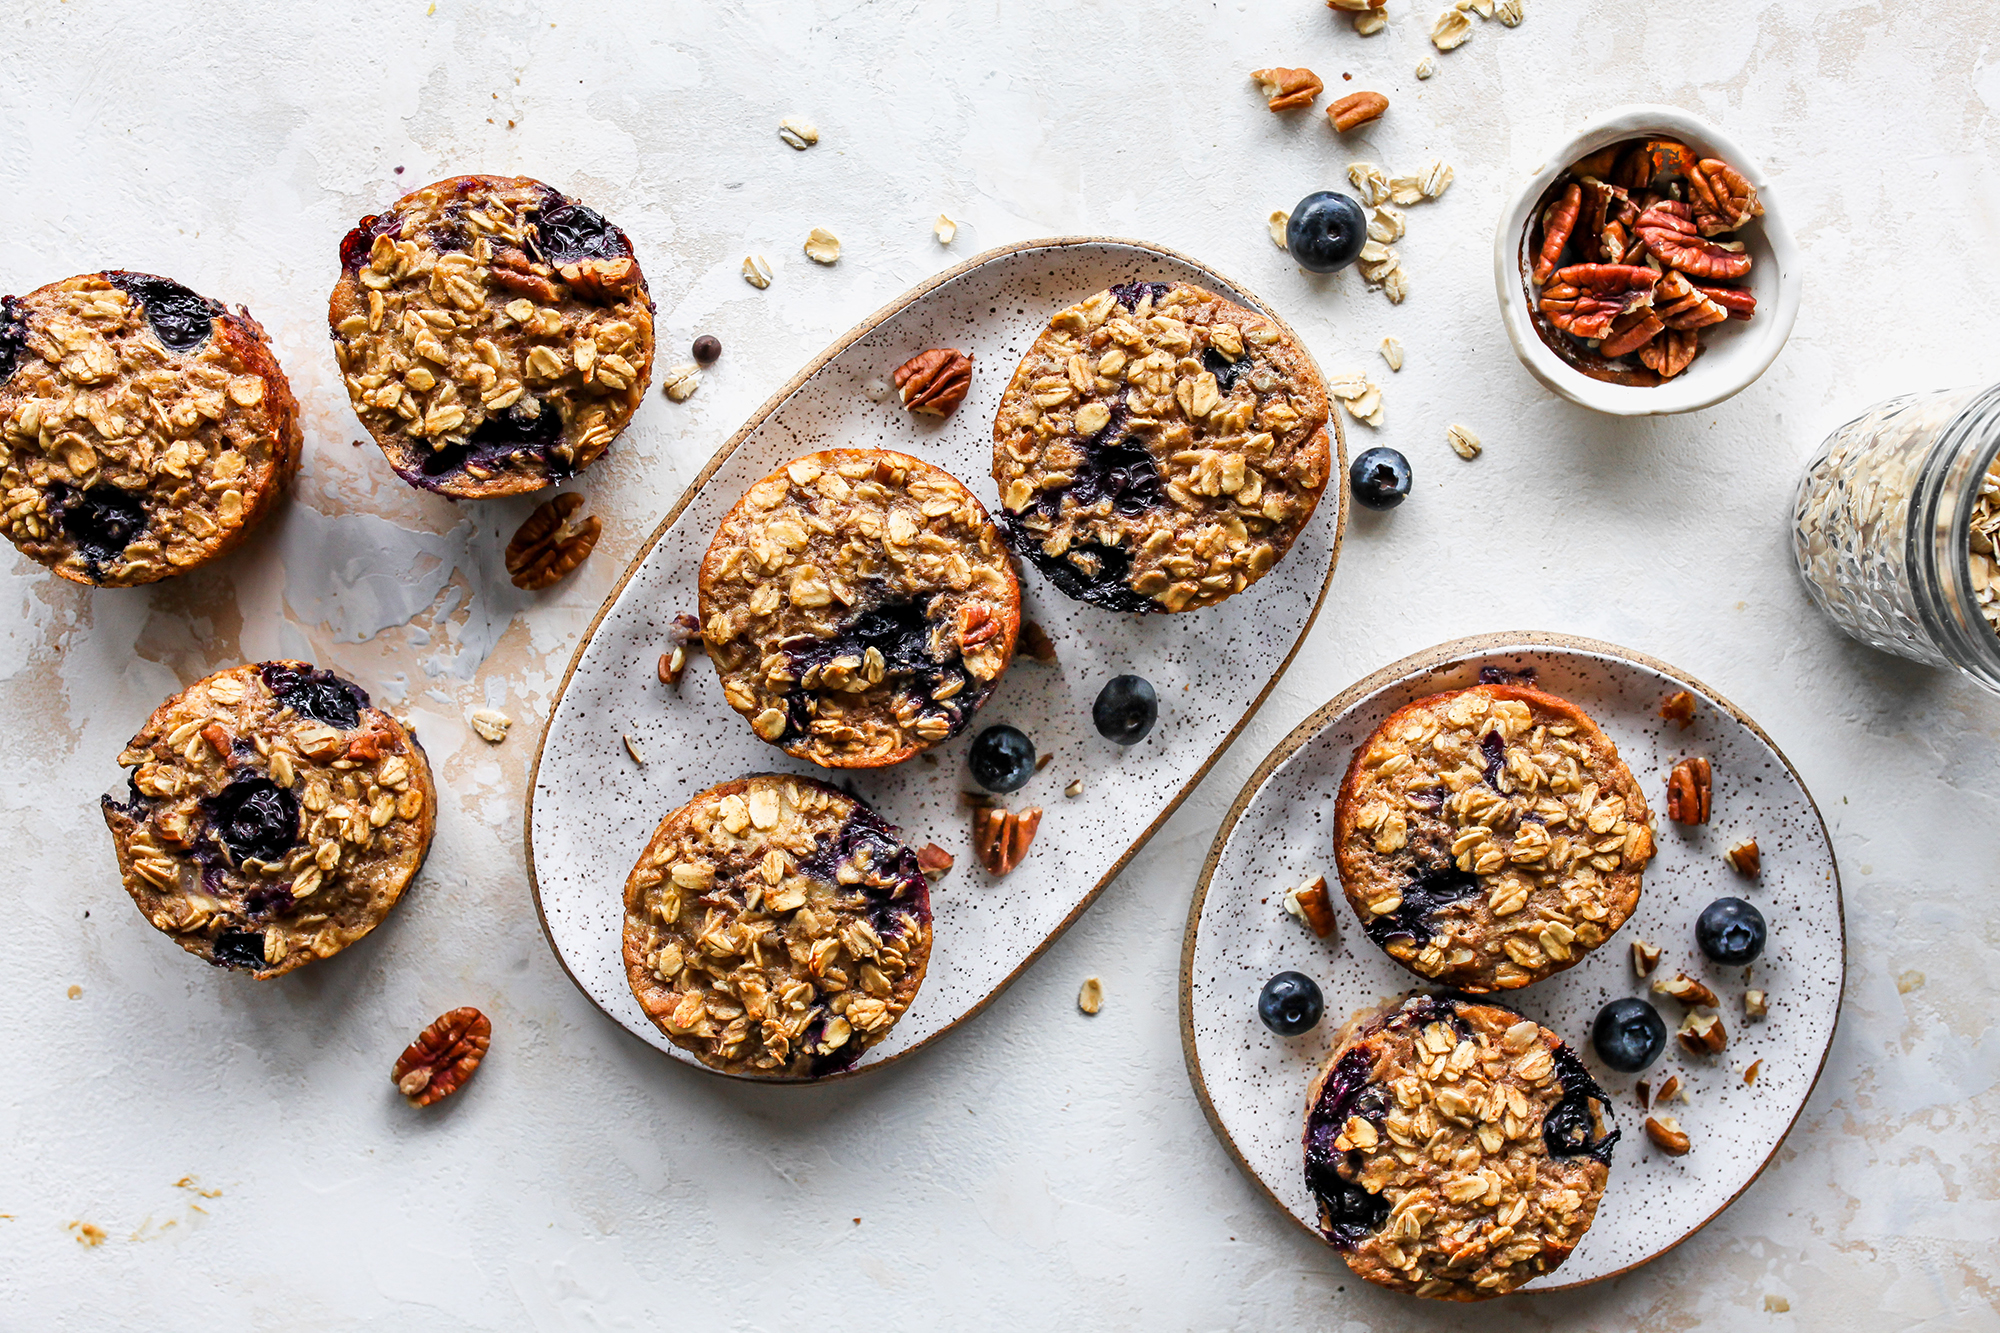 Baked Blueberry & Banana-Nut Oatmeal Cups